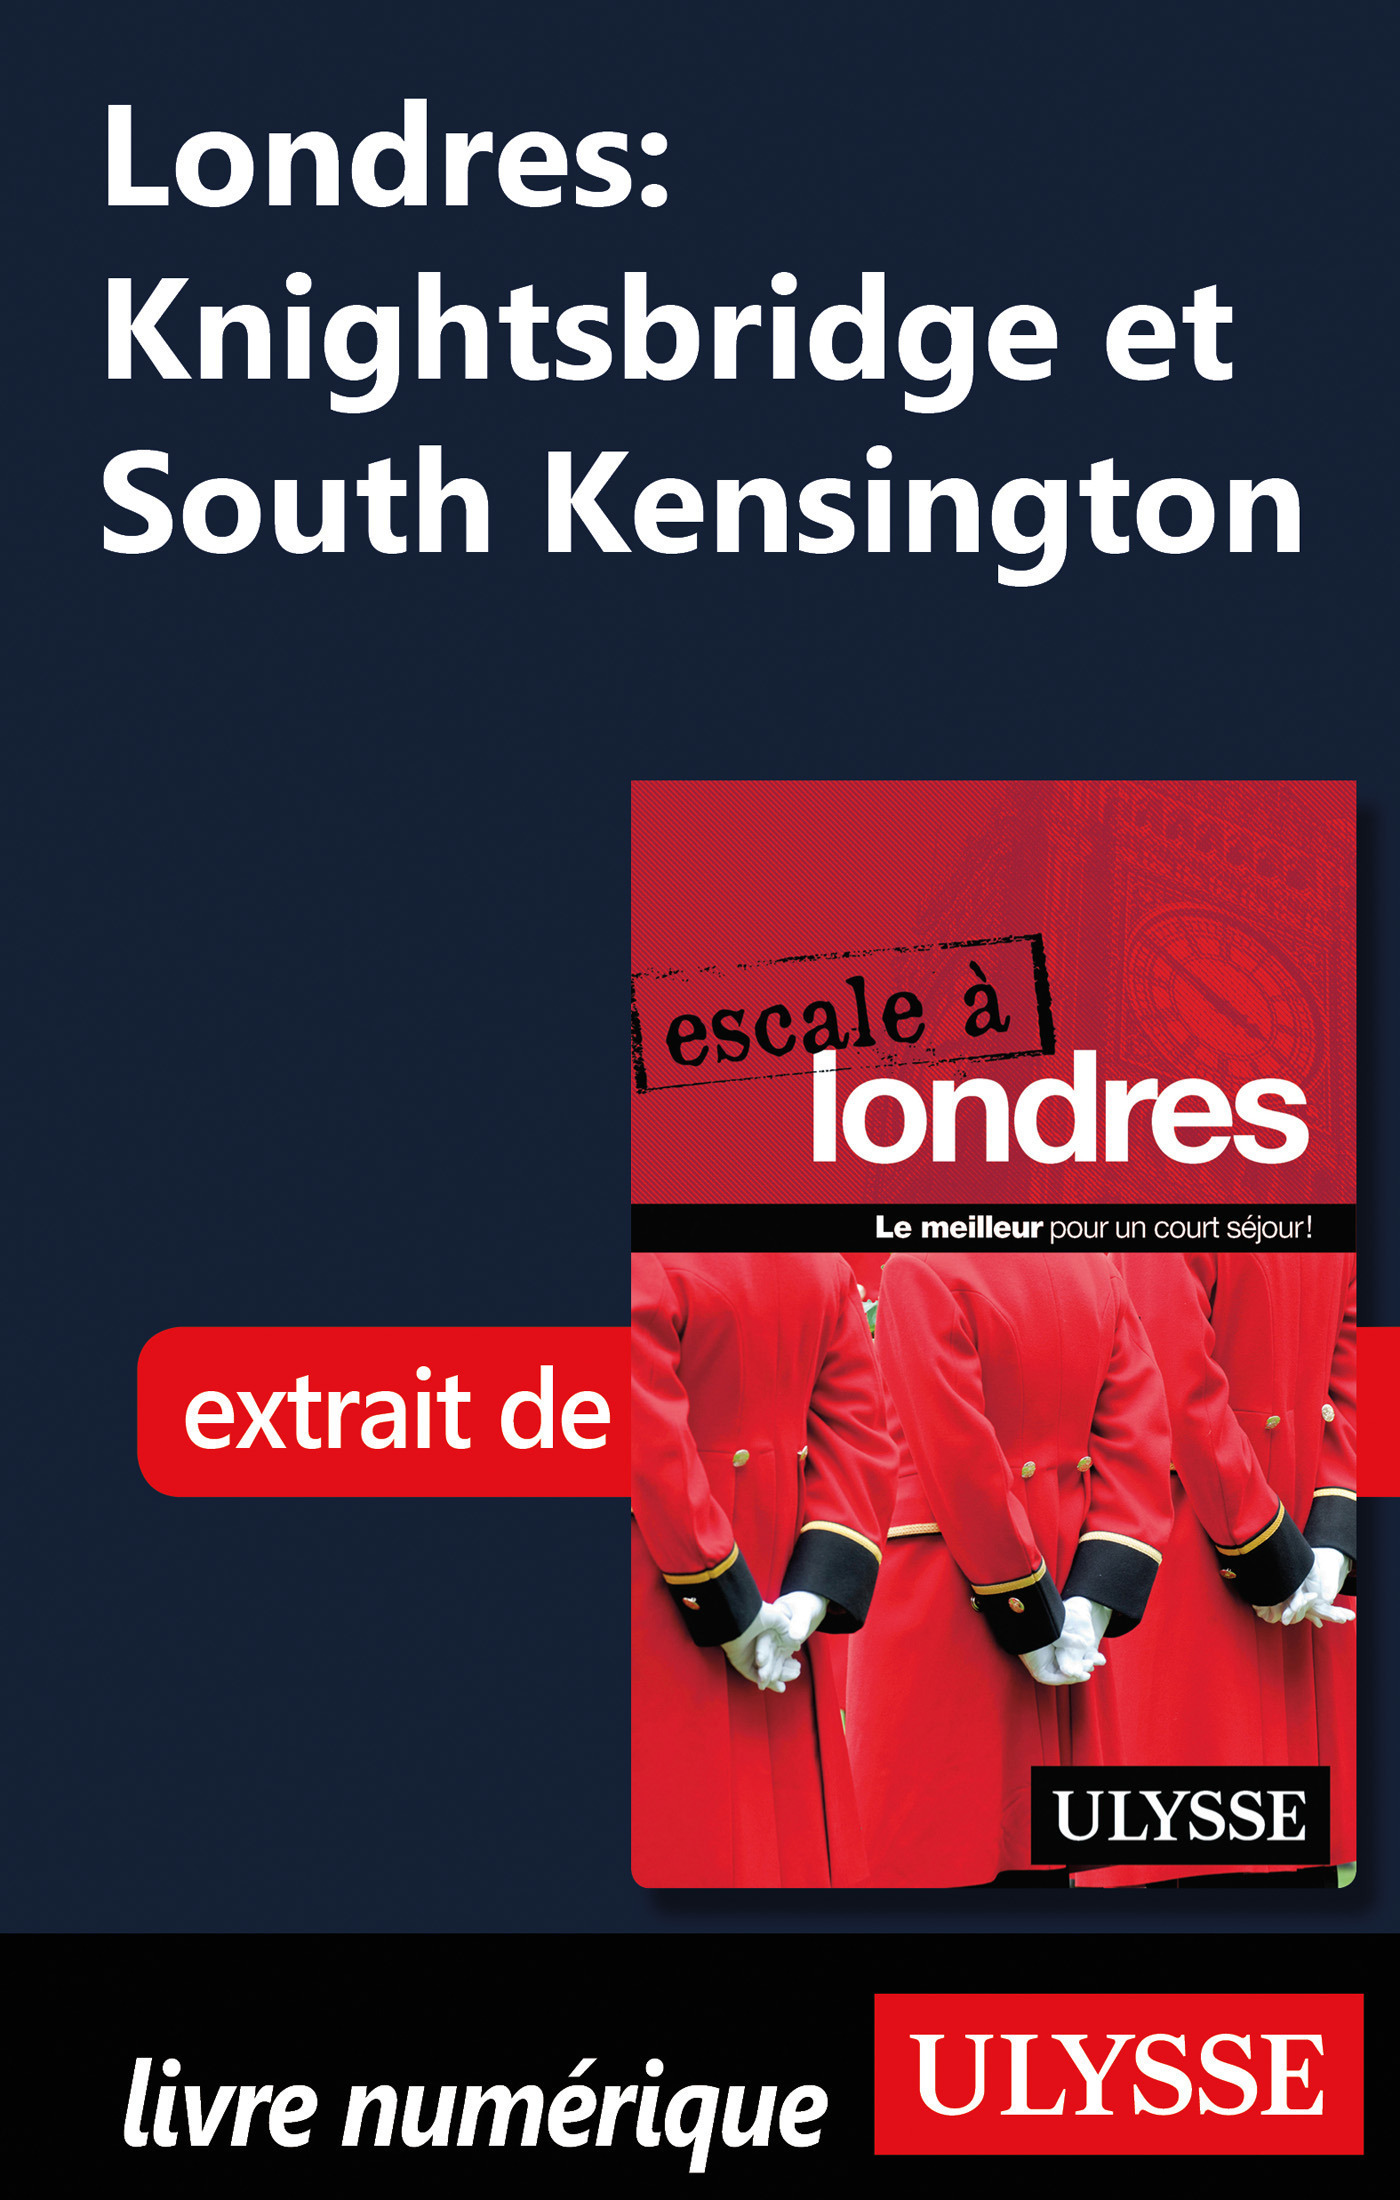 Londres : Knightsbridge et South Kensington